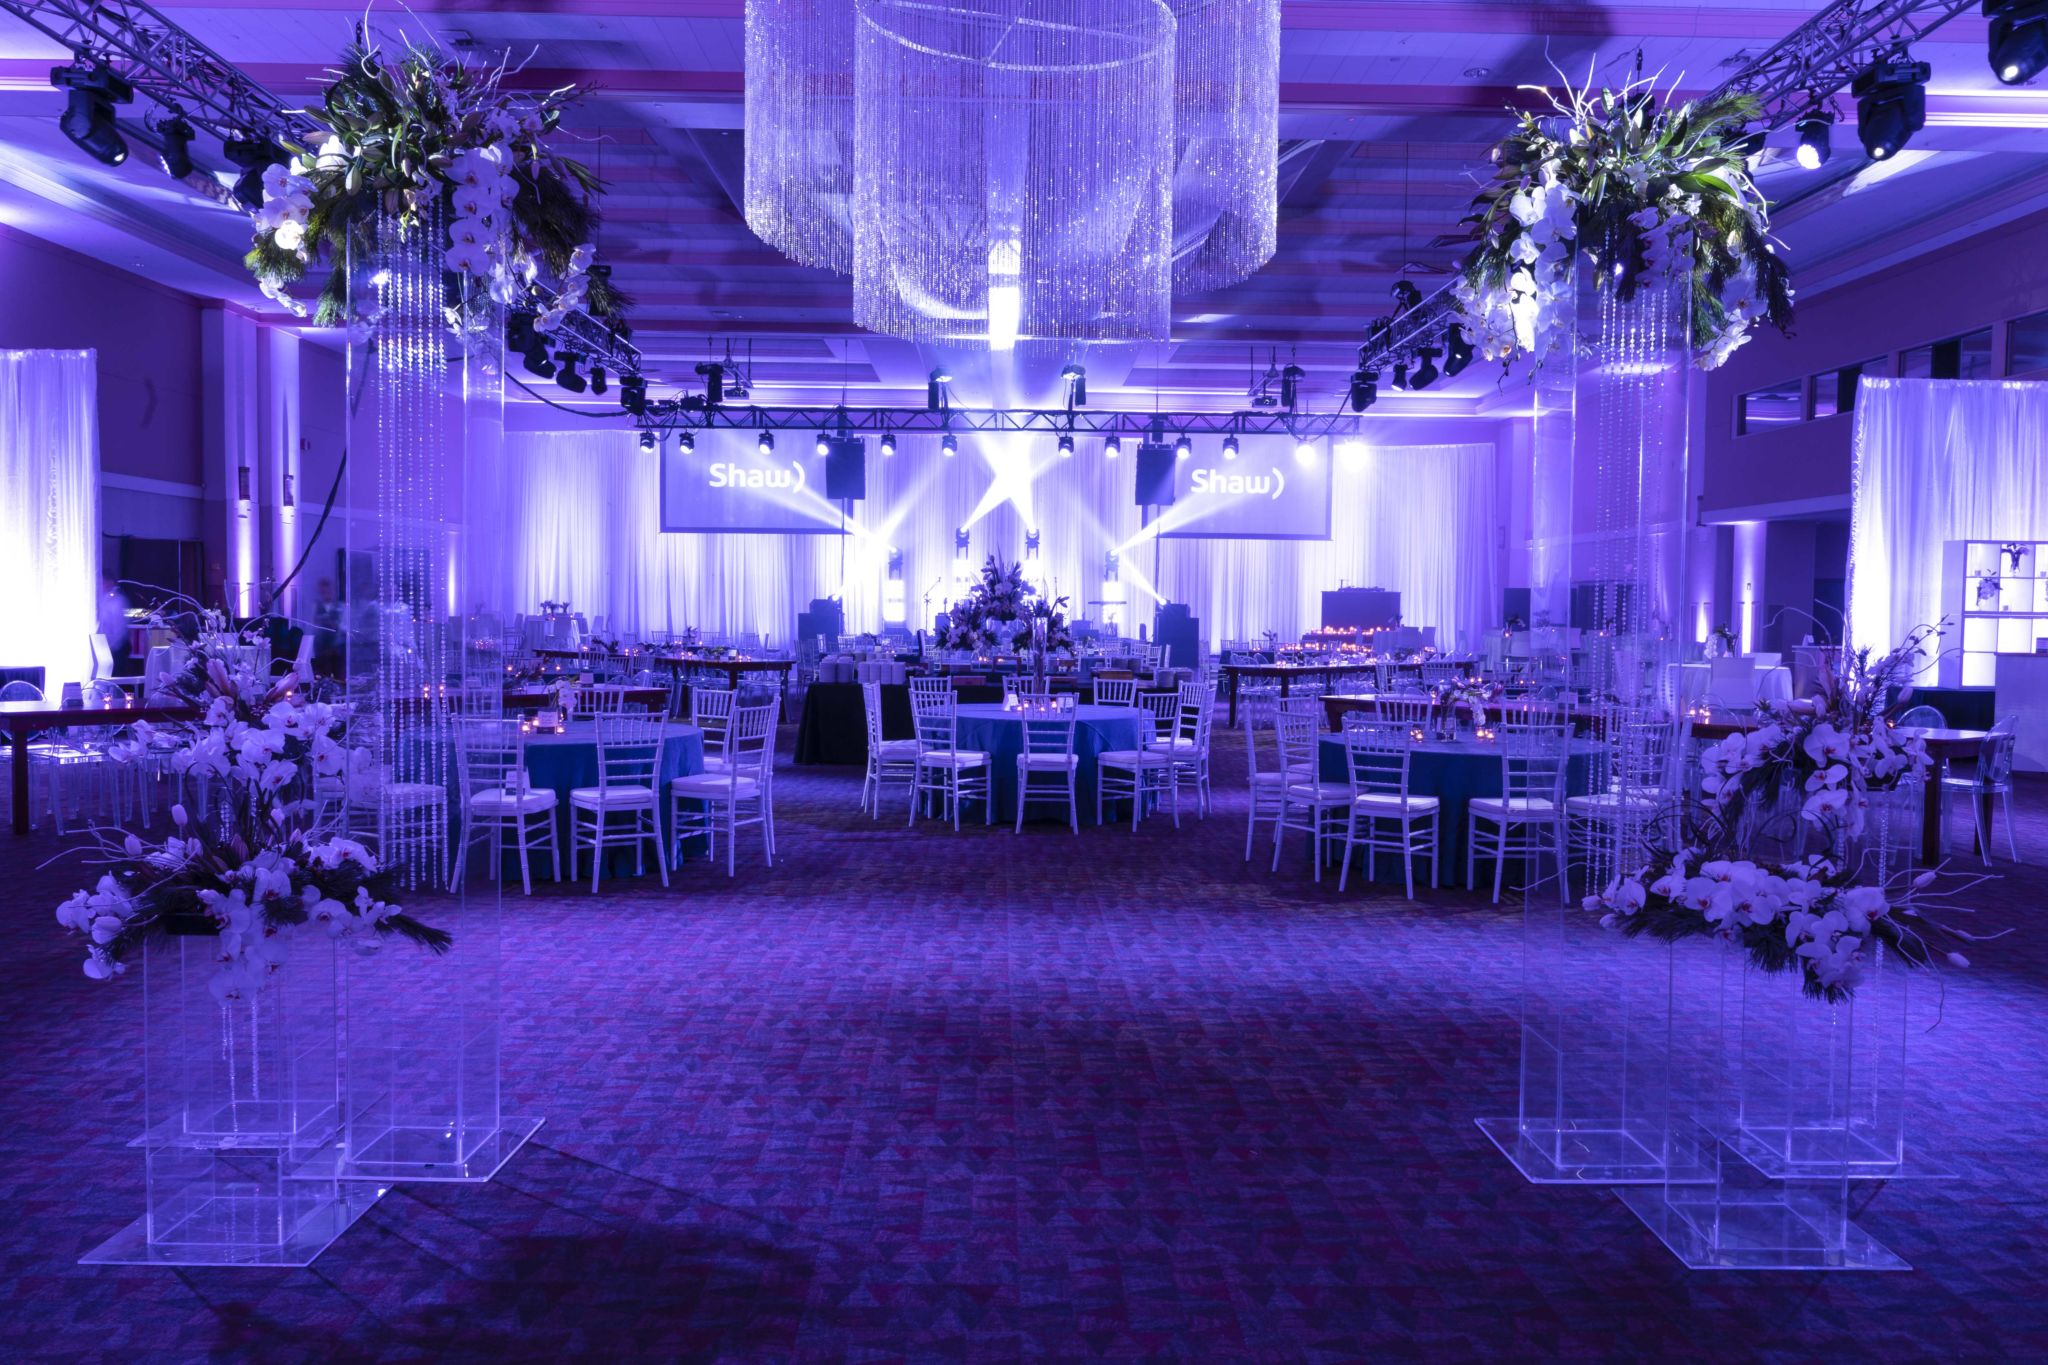 WE CREATE THE ULTIMATE GUEST EXPERIENCE THROUGH EVENT DESIGN